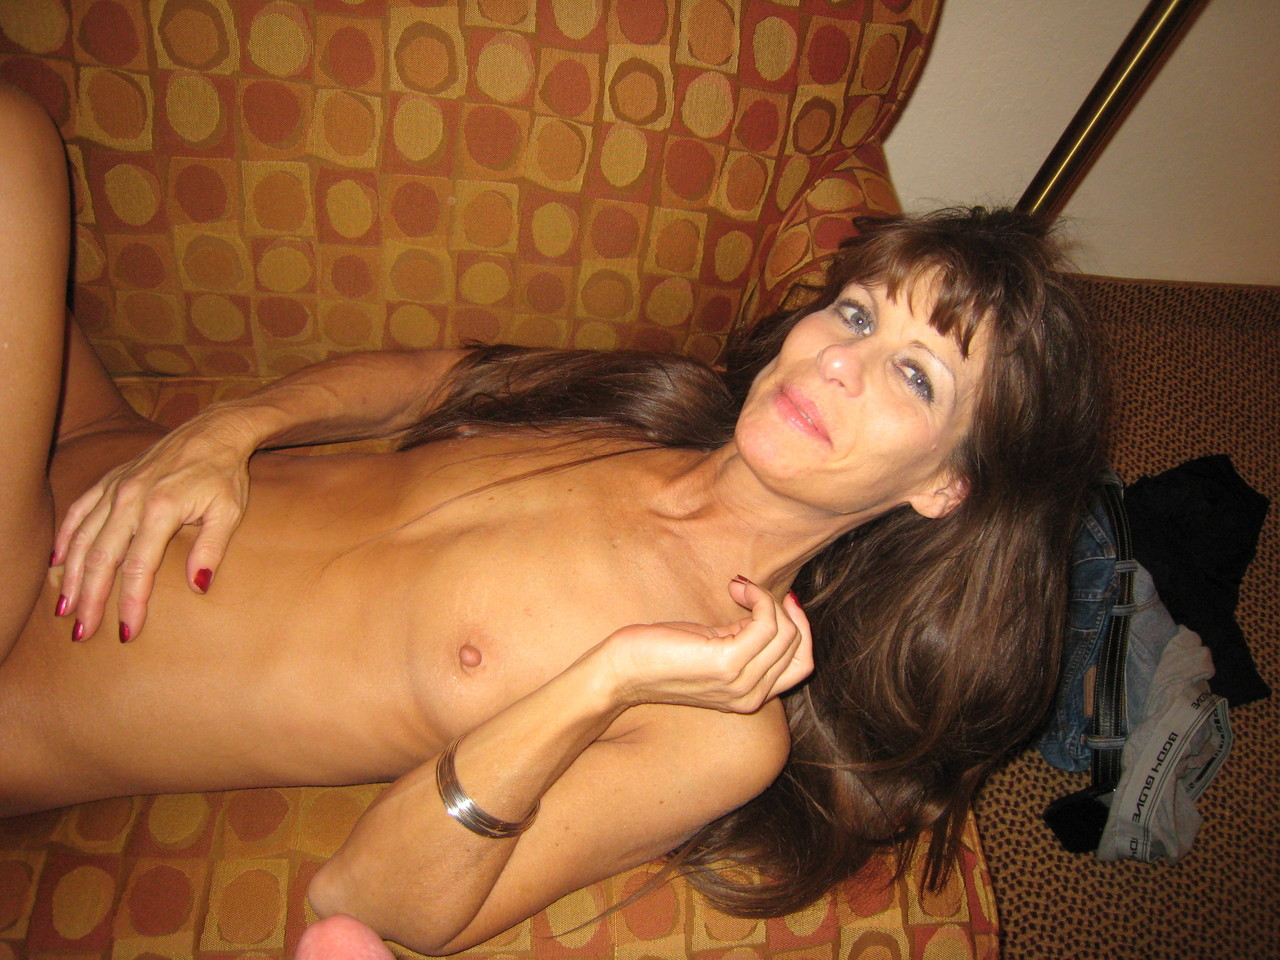 Chested milf flat FLAT CHESTED